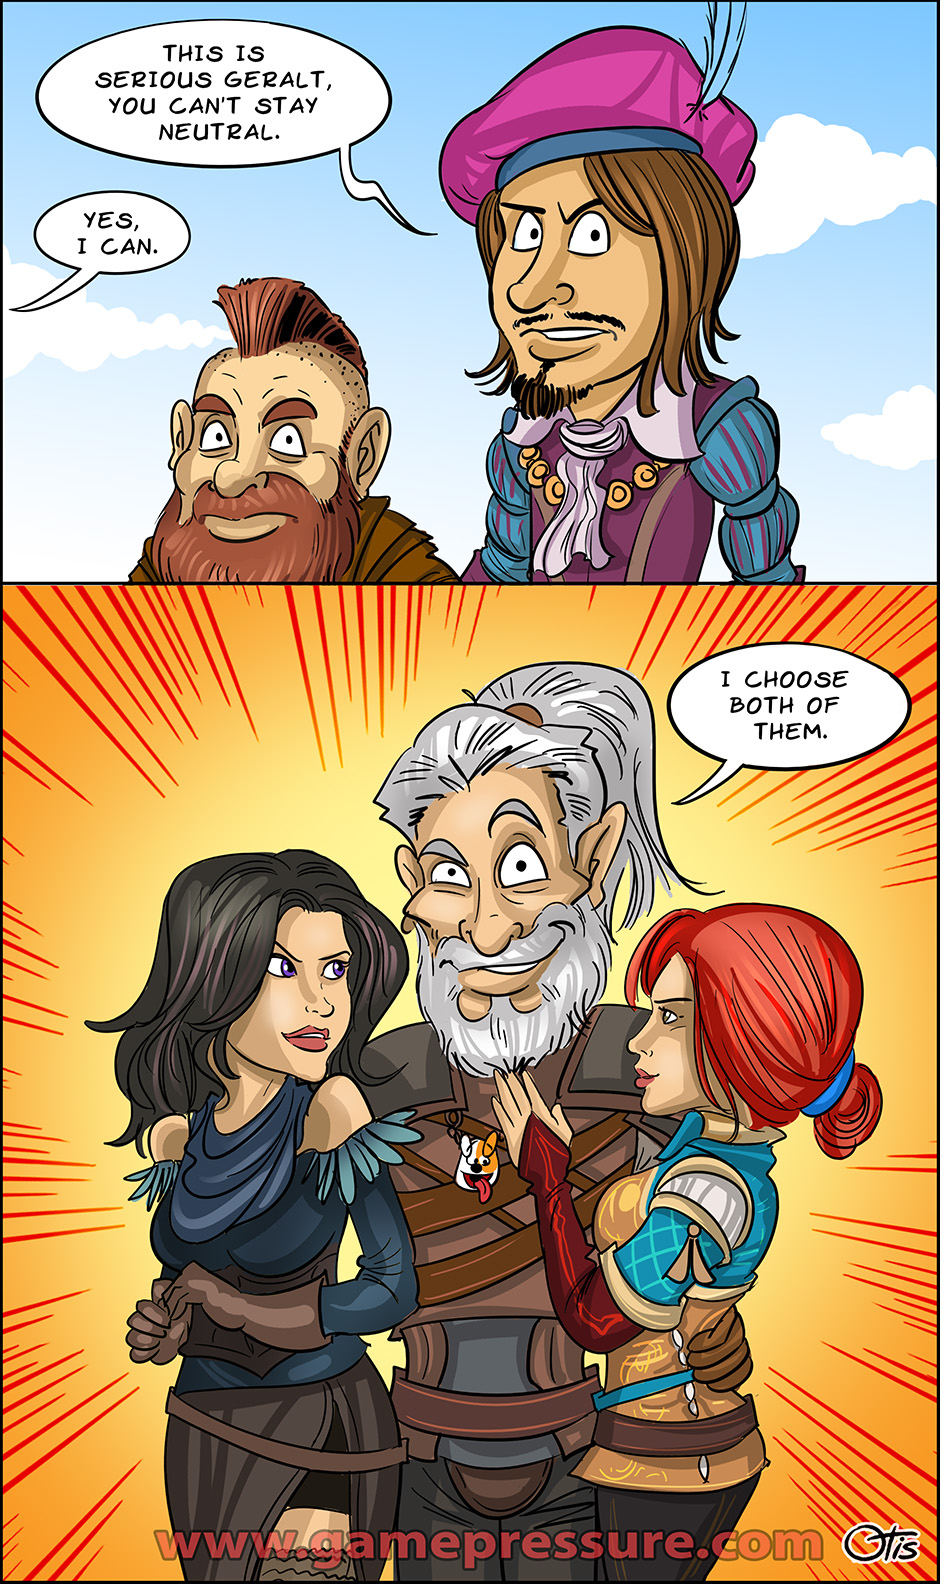 Geralt always stays neutral, comics Cartoon Games, #235. White Wolf is the only witcher who can stay neutral in such cases.